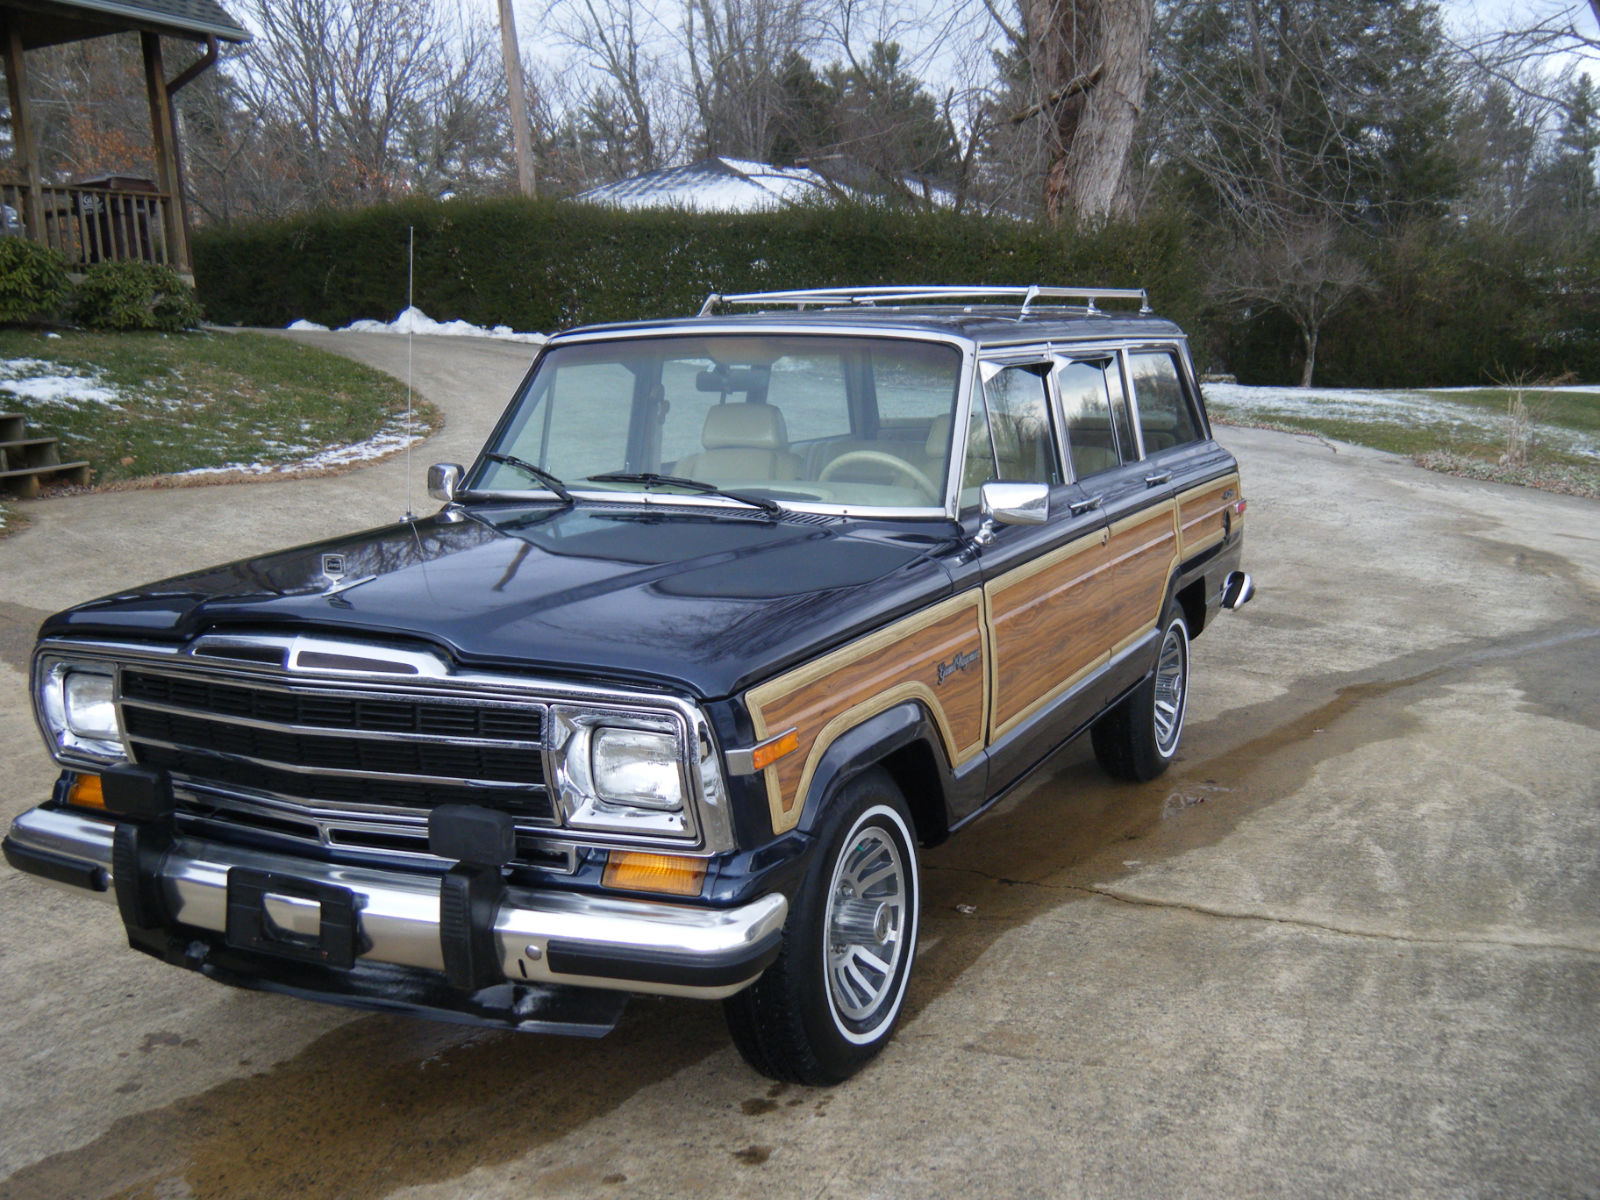 Best Jeep Jeep Grand Wagoneer Restoration Shops The Motor Masters